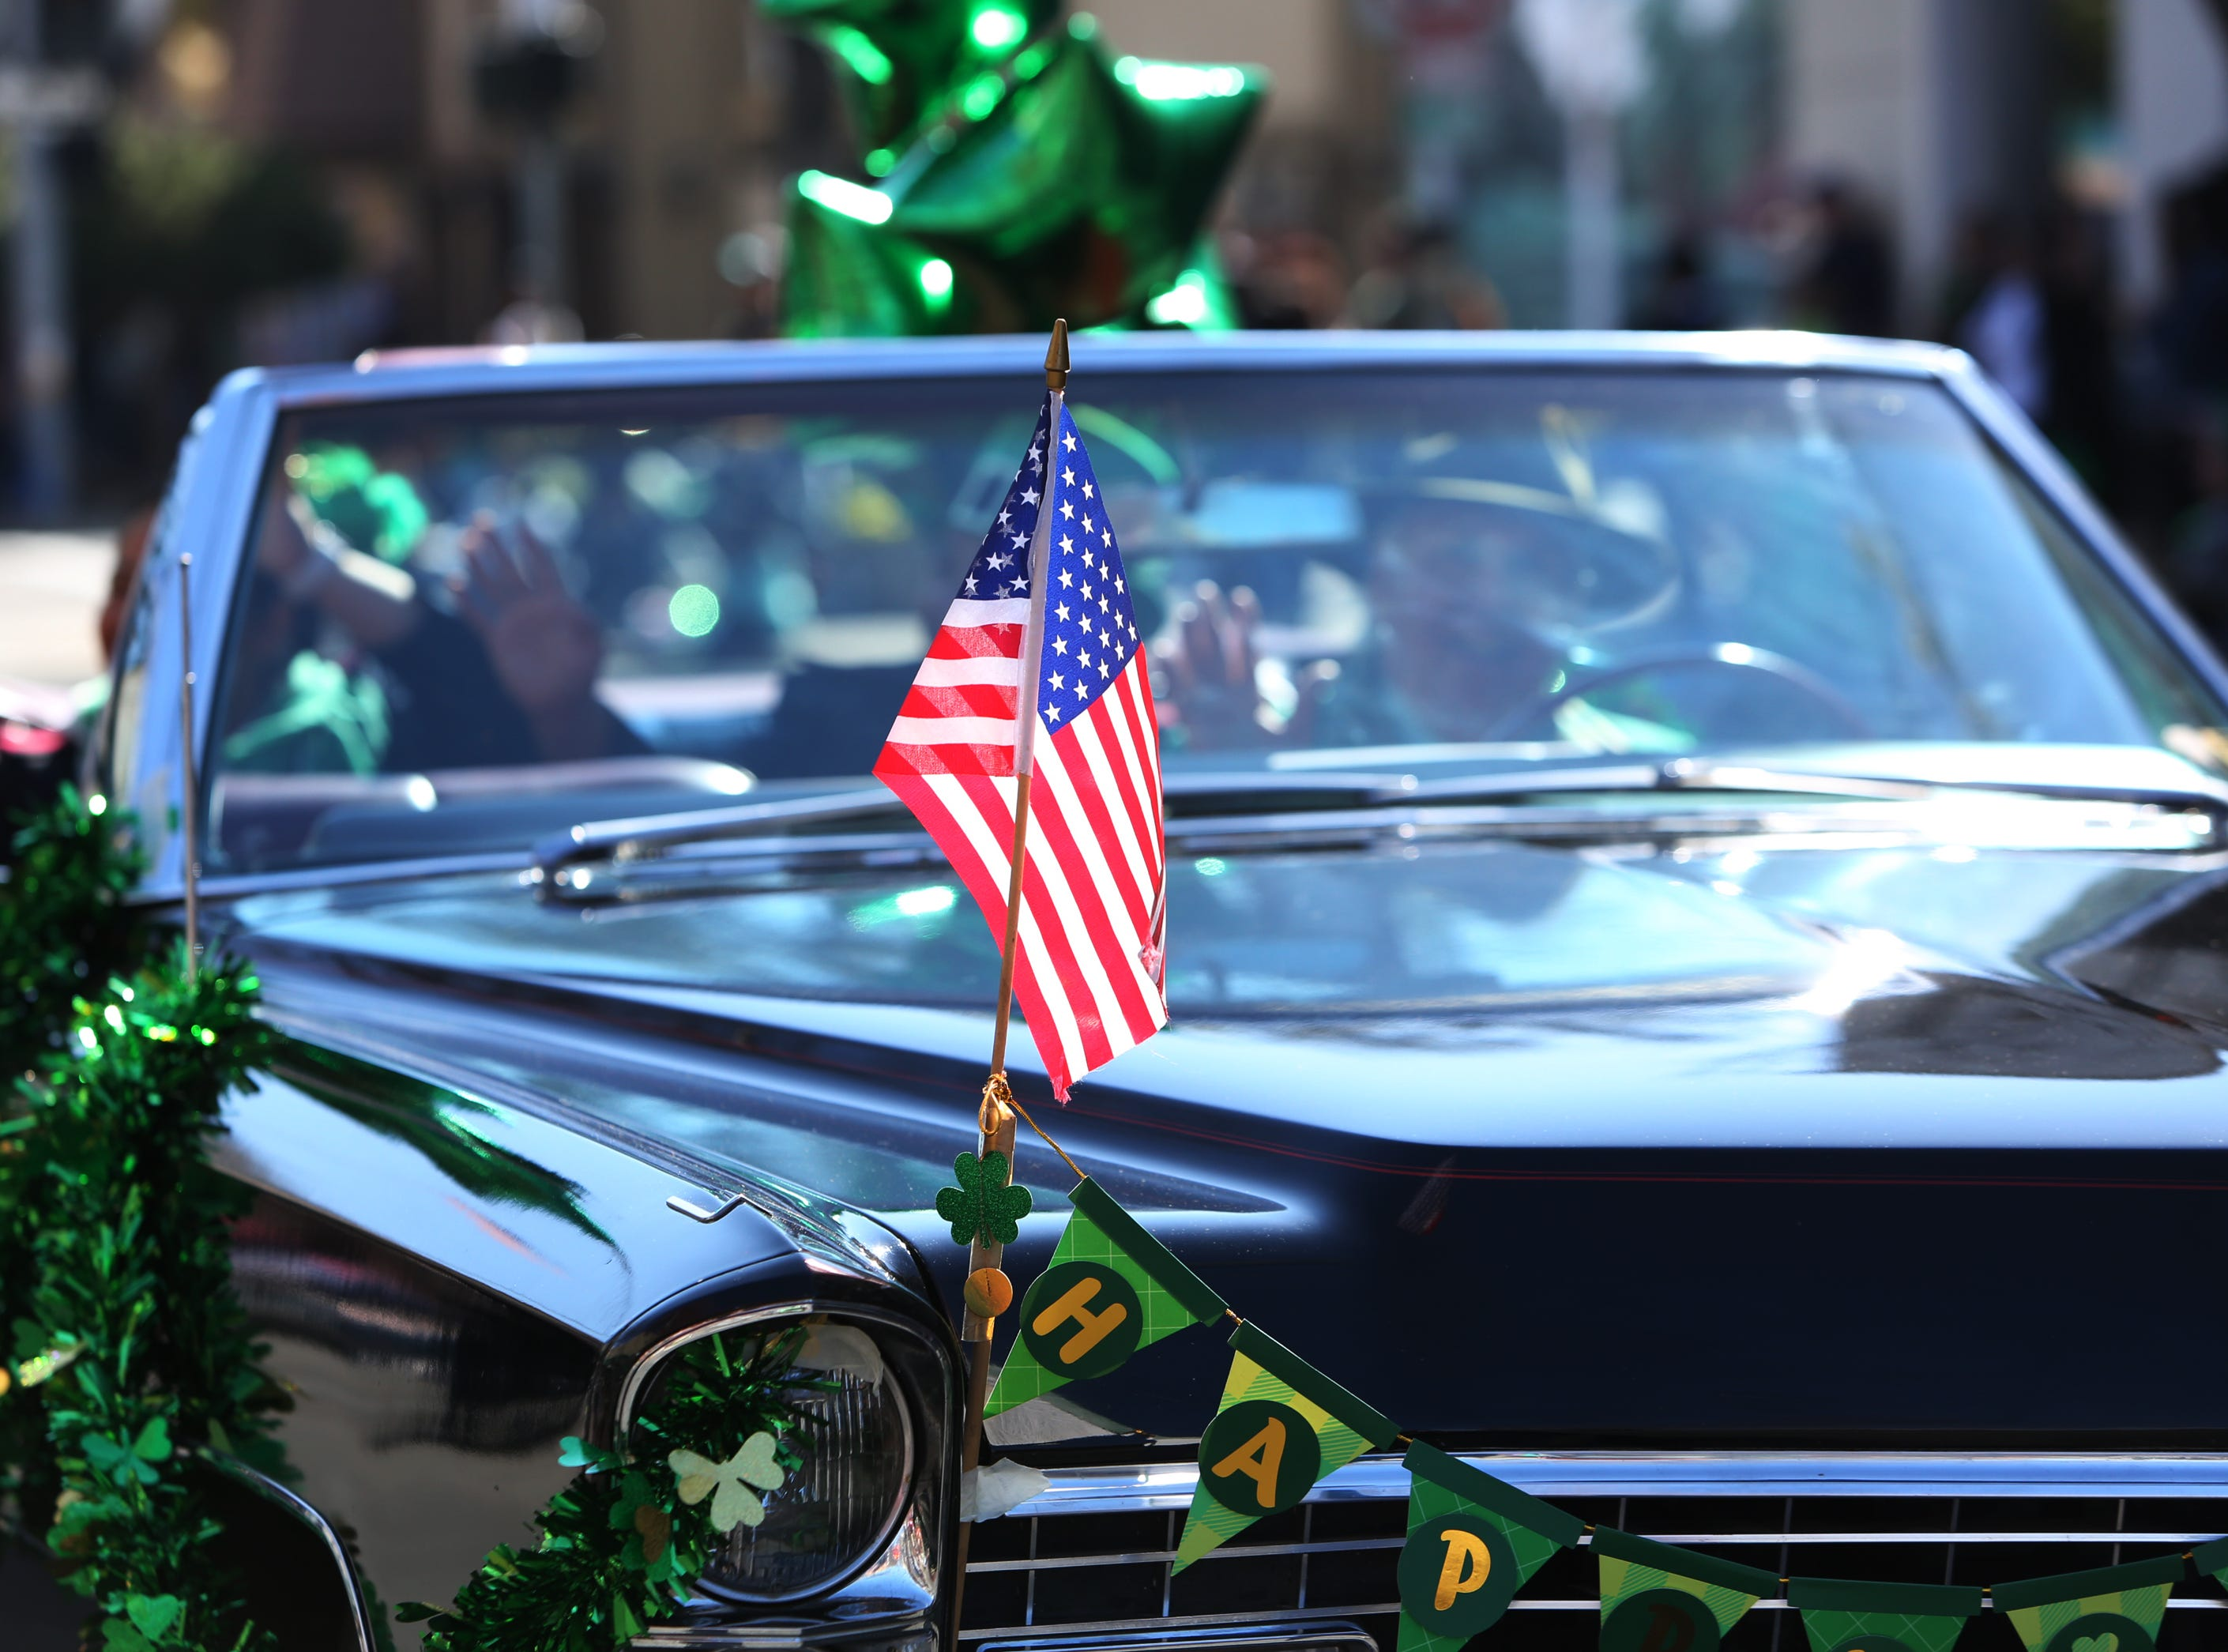 Patriotic entry in this year's St. Patrick's Day parade rolling through Main Street Saturday, March 16, 2019 in Visalia, Calif.